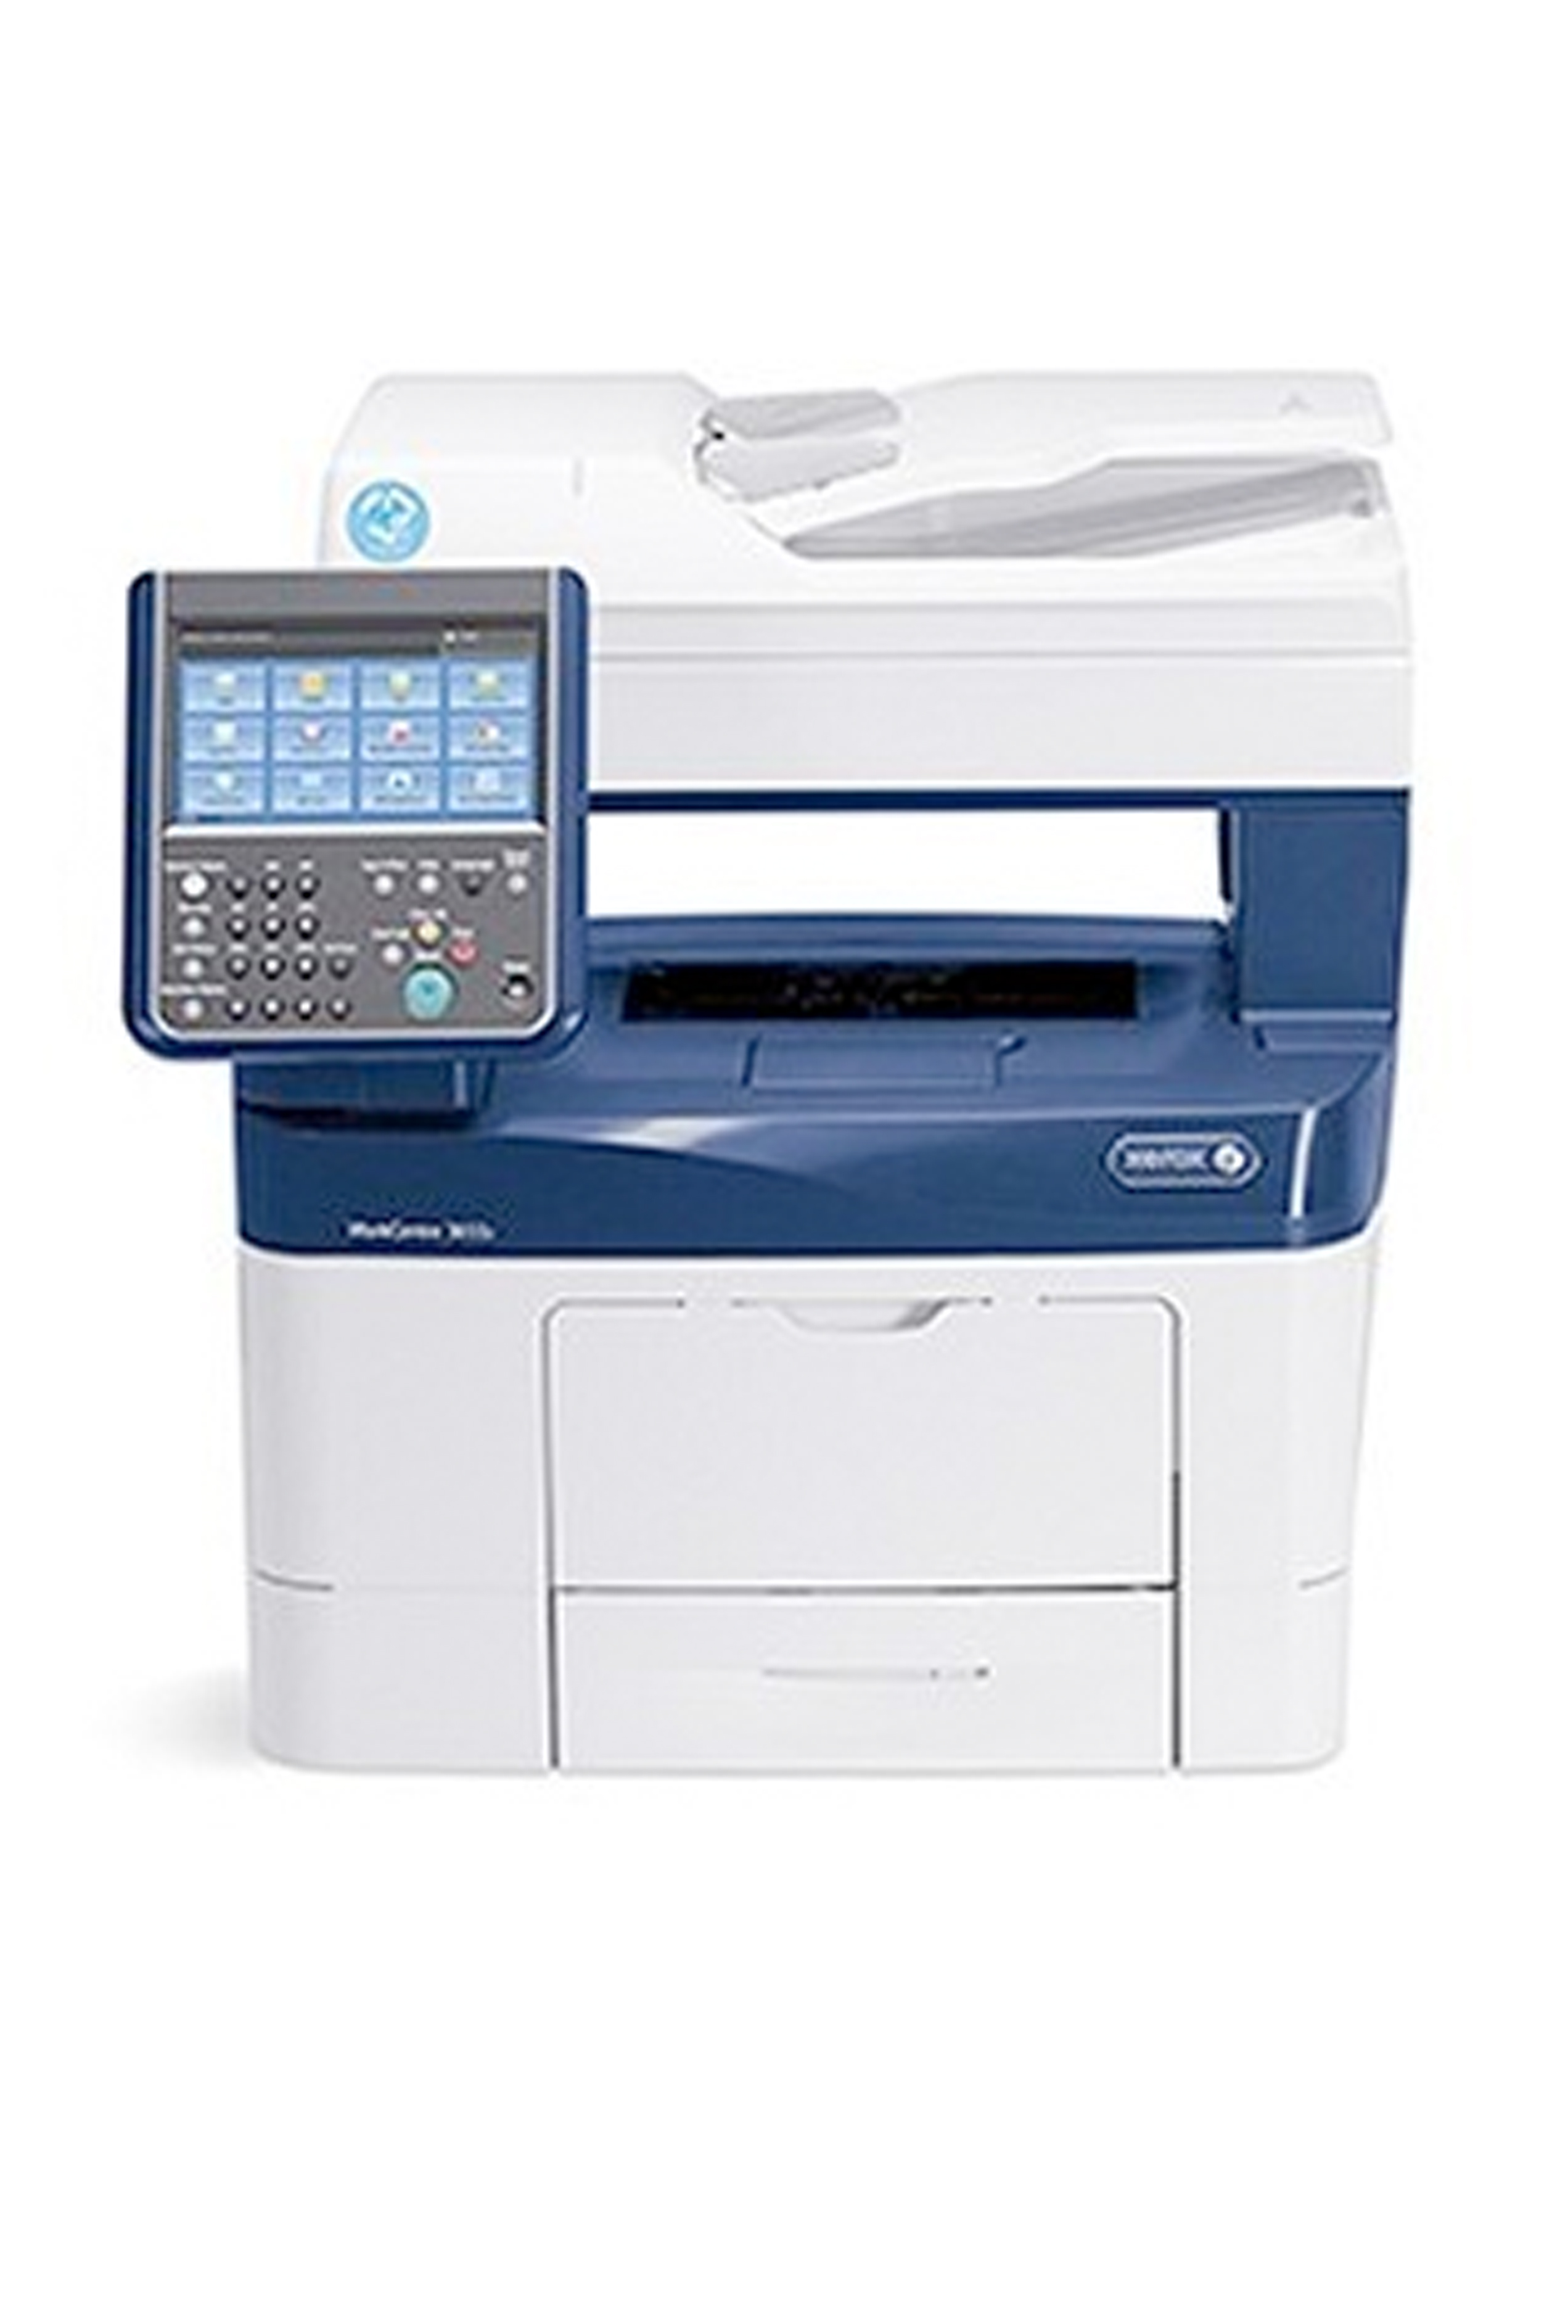 Epson WorkForce Pro WF-3720 All-in-One Printer (20/10ppm)